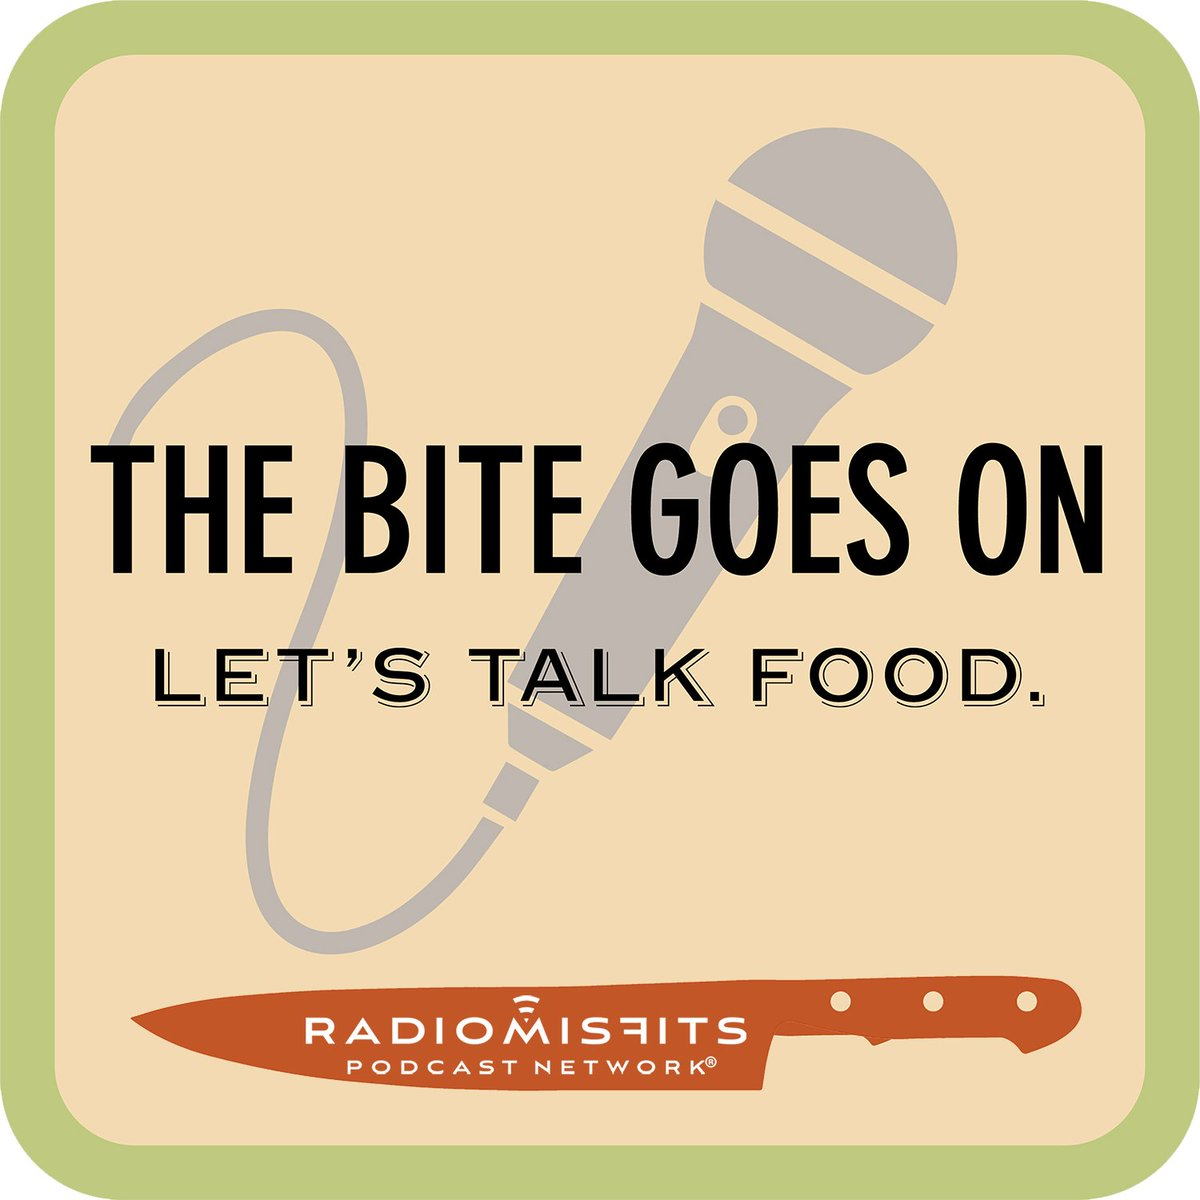 Our founder @biteclubeats connects w/ @figgirl & @Sonomawinelover from the @thebitegoeson  to chat about the state of the restaurant biz, legislation complications, the increased need for food, funding needs & more. #foodindustry #nonprofit #giveback https://radiomisfits.com/tbgo83/pic.twitter.com/eVQKDQKAHw